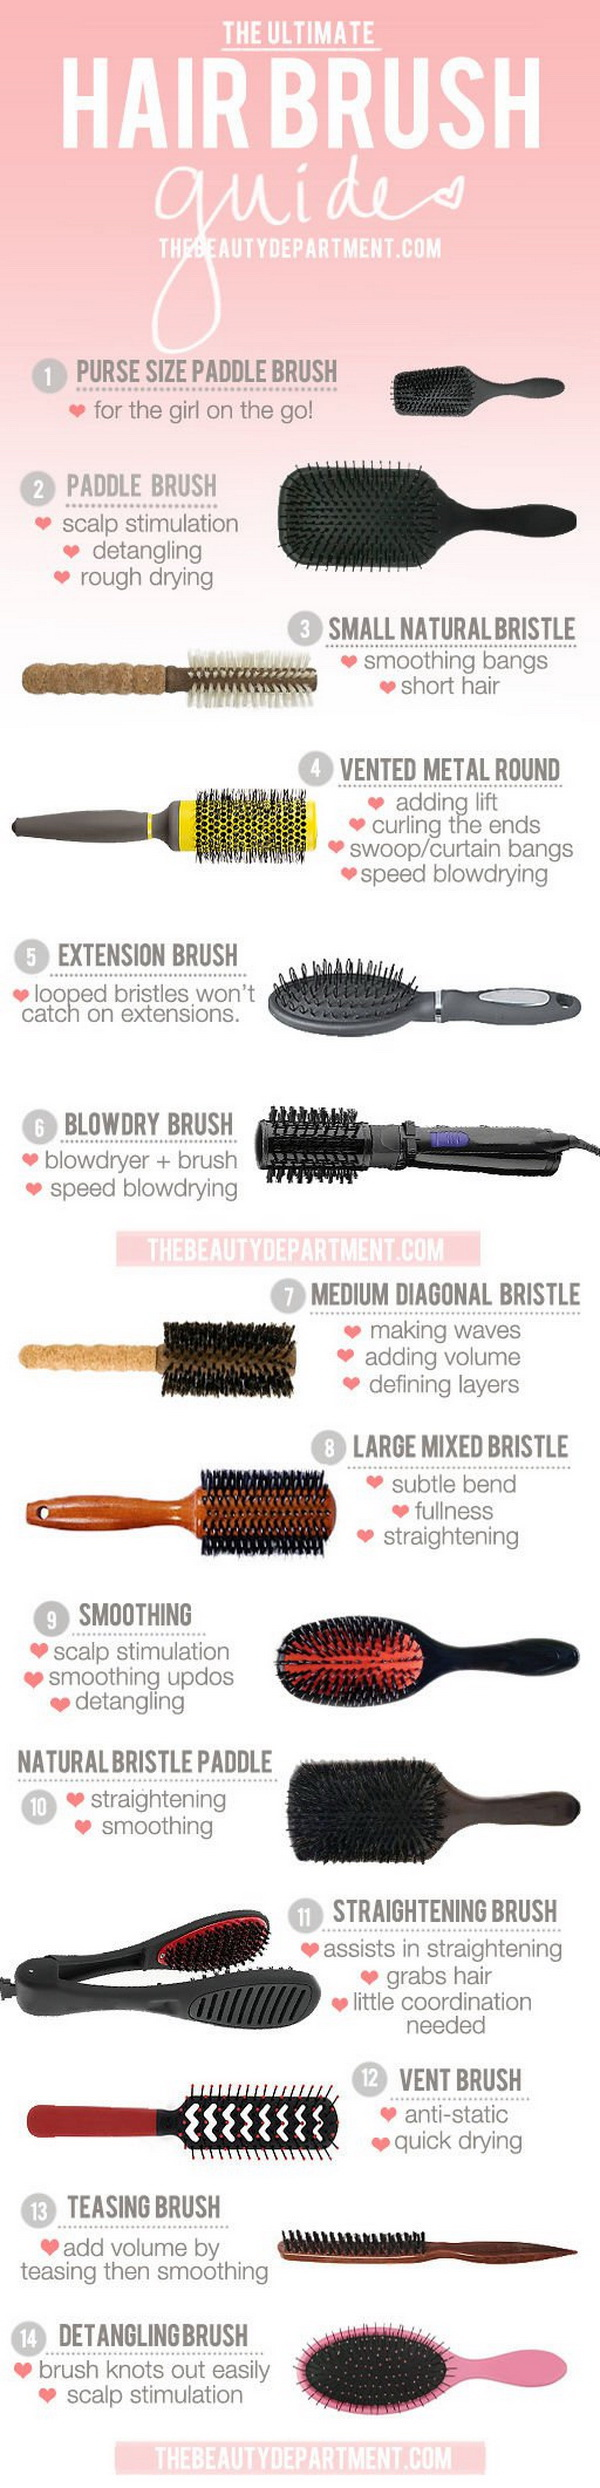 The right brush for your hair helps keep your hair shiny. Figure out exactly what kind of hair brushes for your hair type and style with this picture instructions.